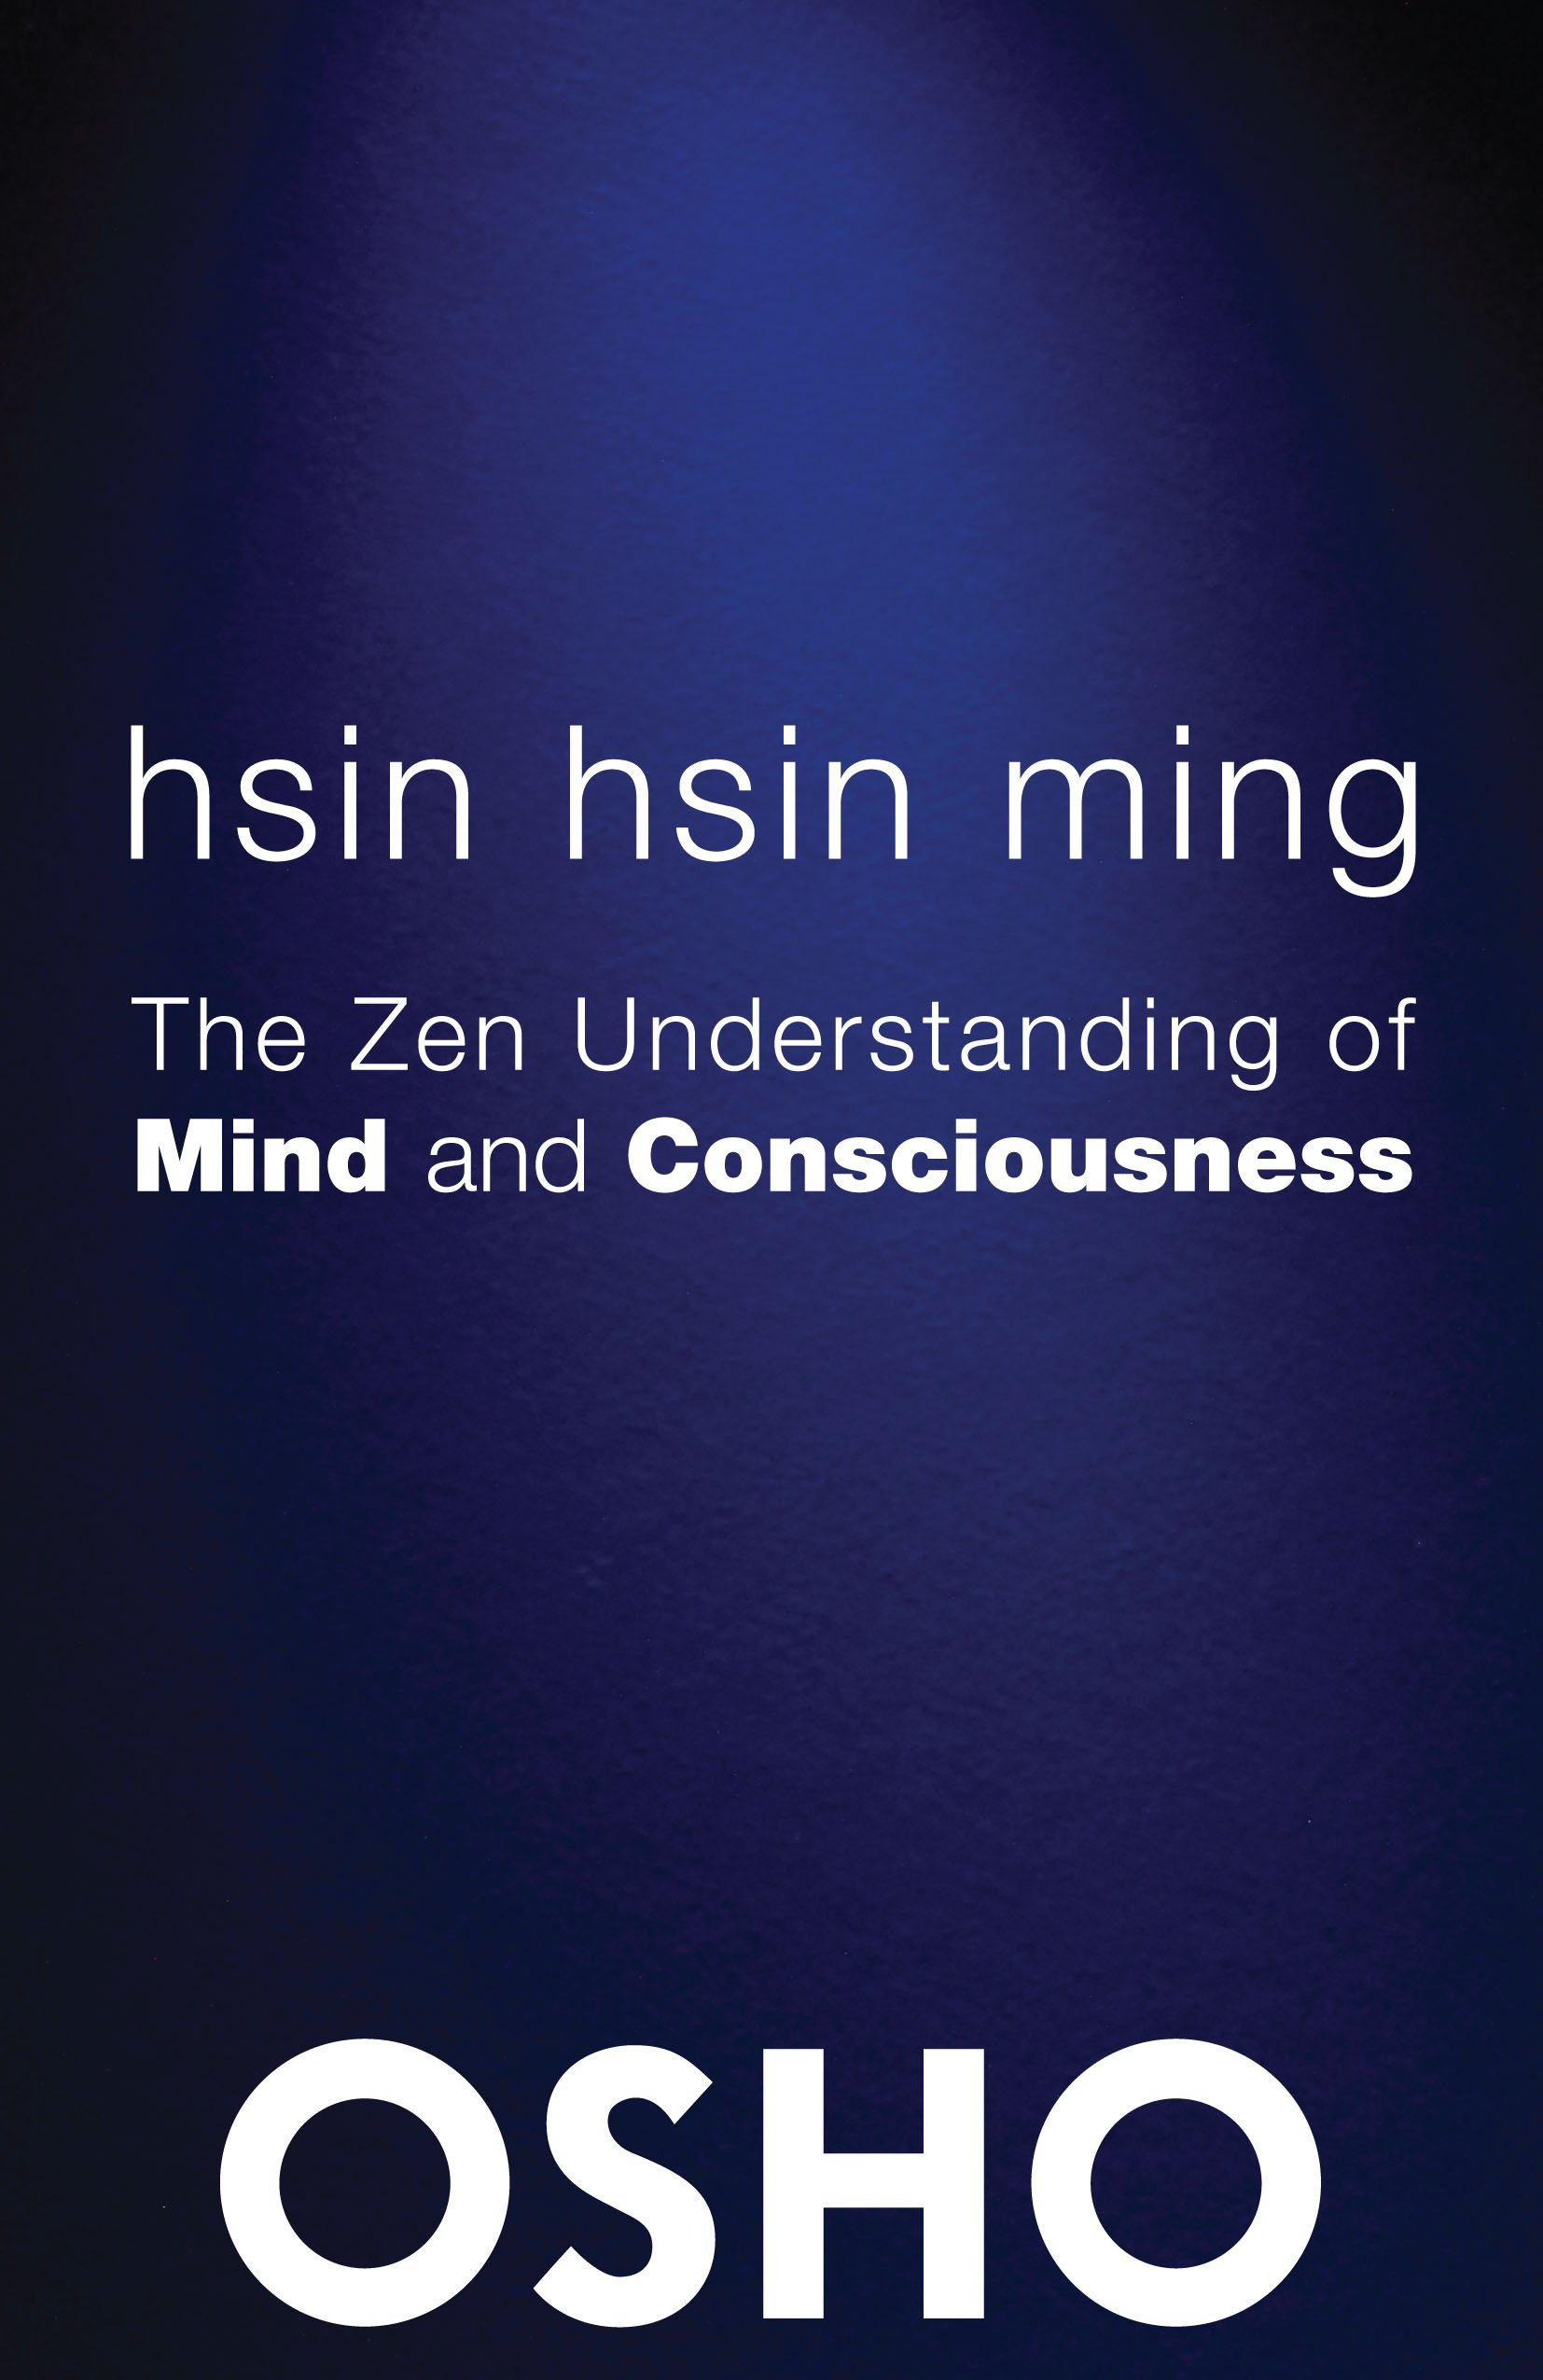 Read Online Hsin Hsin Ming: The Zen Understanding of Mind and Consciousness (OSHO Classics) ebook